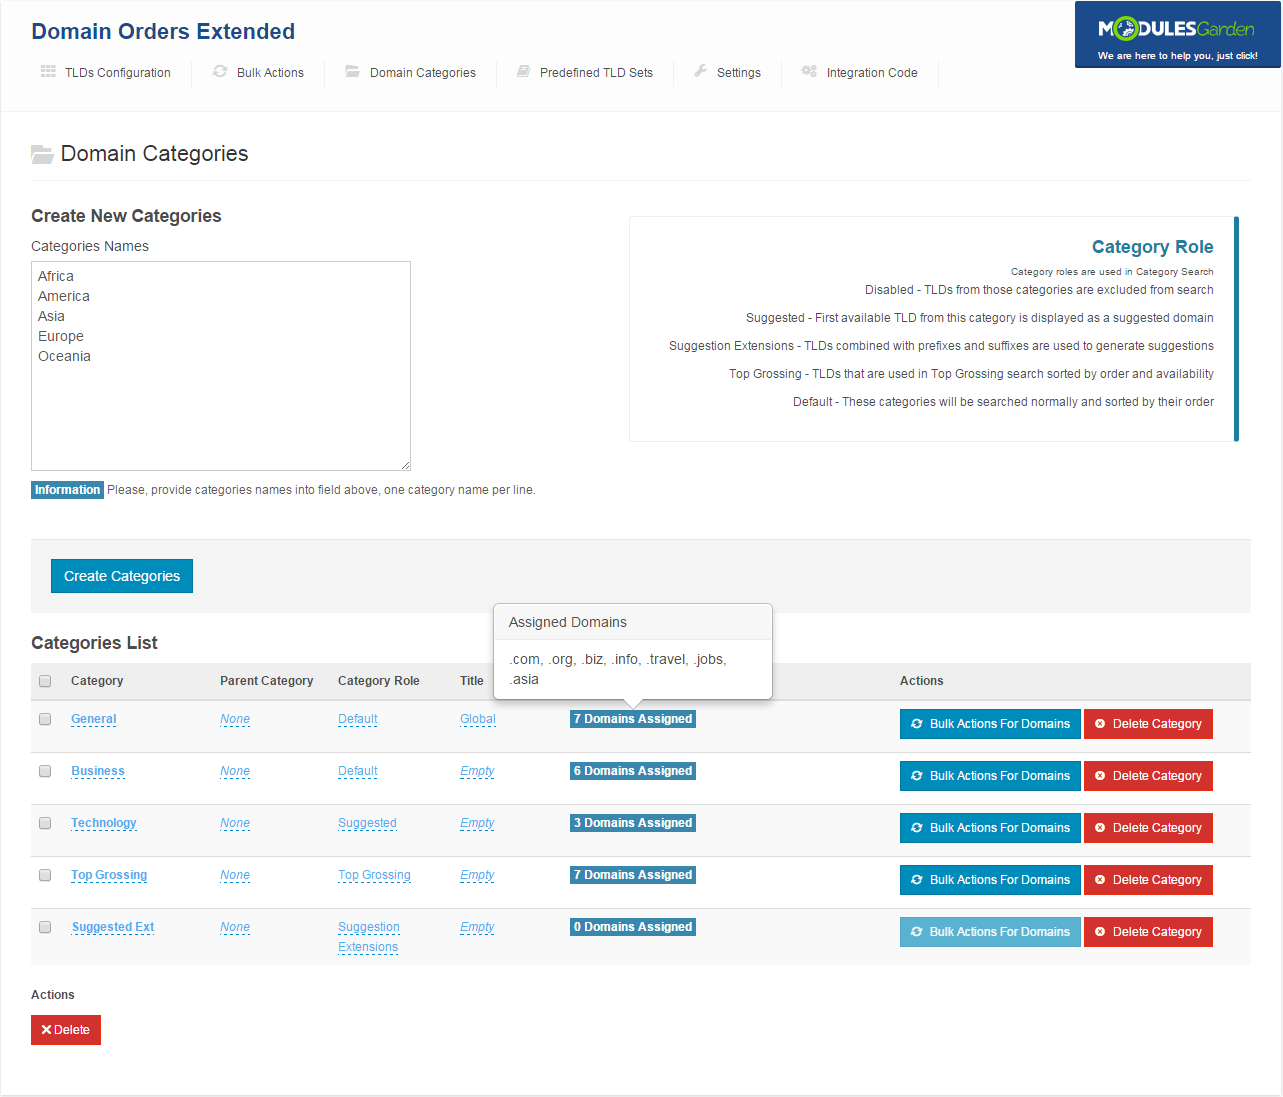 Domain Orders Extended For WHMCS: Screen 8